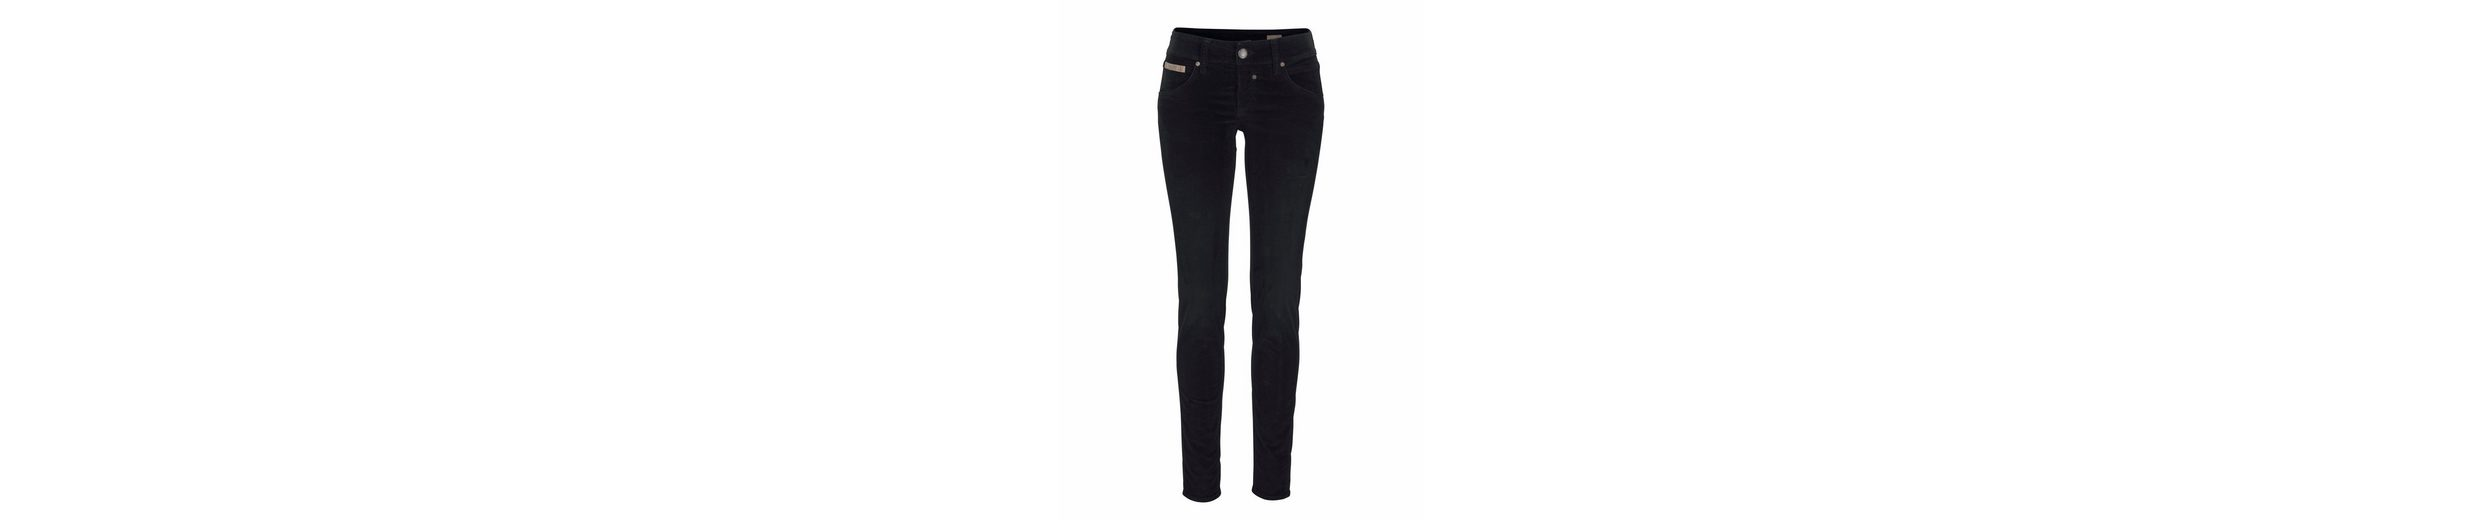 Herrlicher Slim-fit-Jeans TOUCH SLIM, in Velvet-Optik